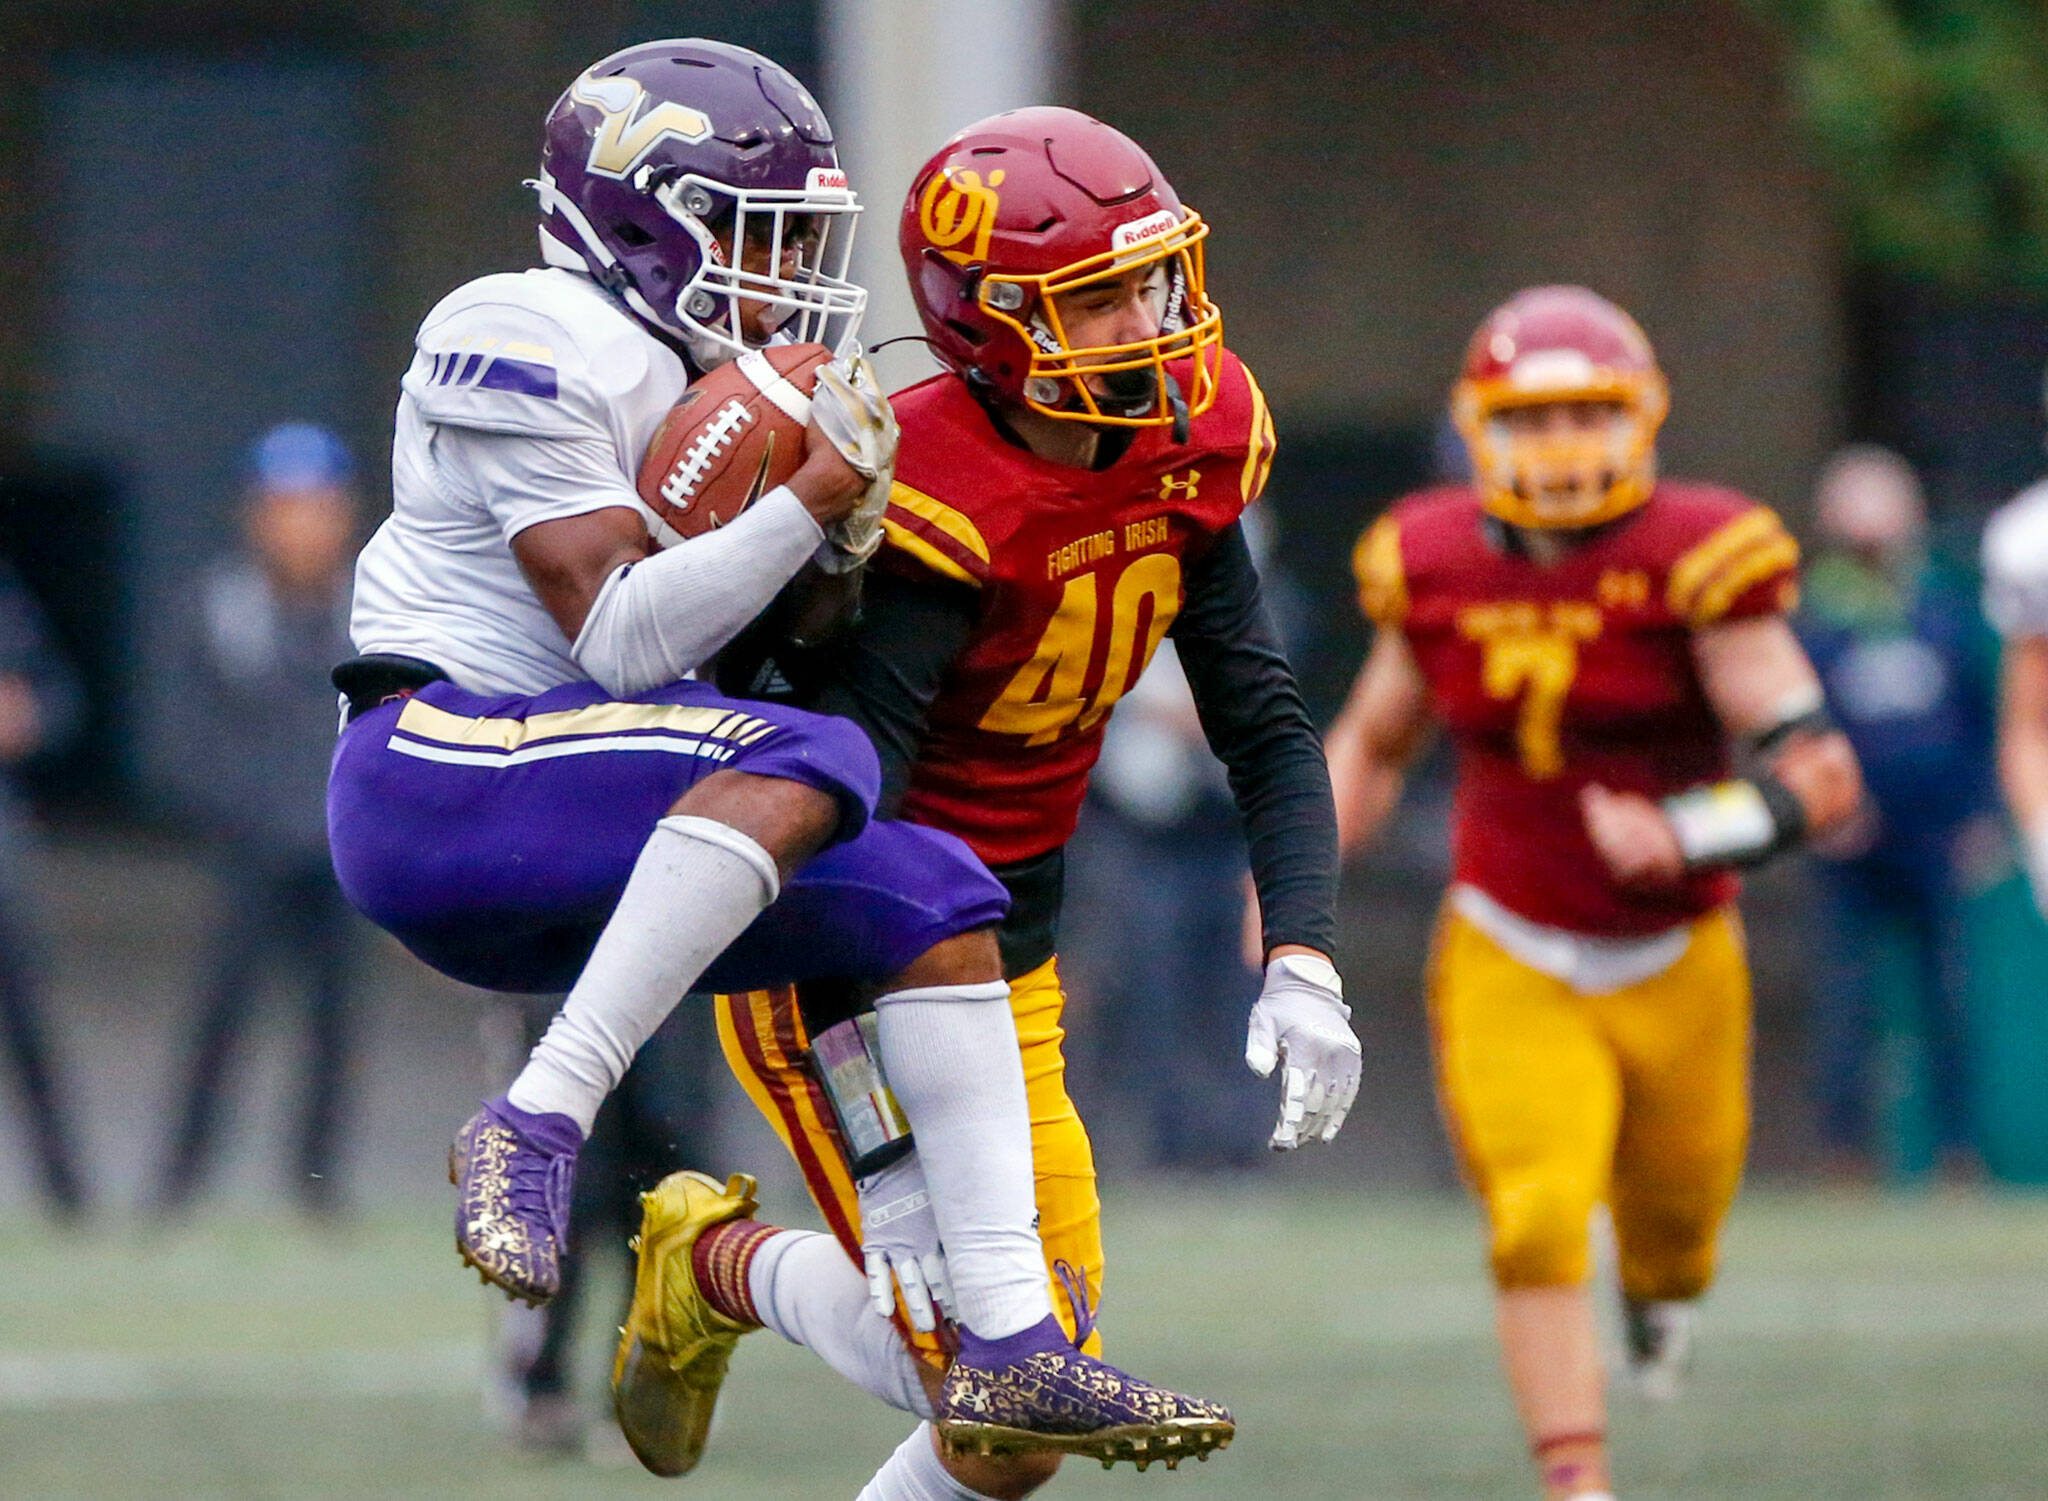 Lake Stevens receiver Trayce Hanks scored a pair of 70-yard touchdowns in a breakout performance. (Kevin Clark / The Herald)